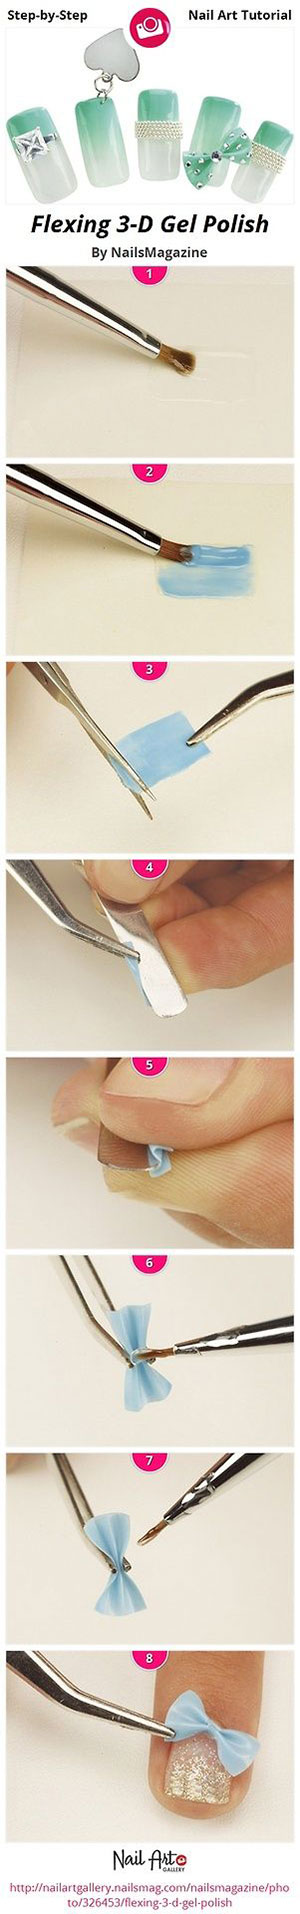 Easy-Simple-Step-By-Step-Gel-Nail-Art-Tutorials-For-Beginners-Learners-2014-10